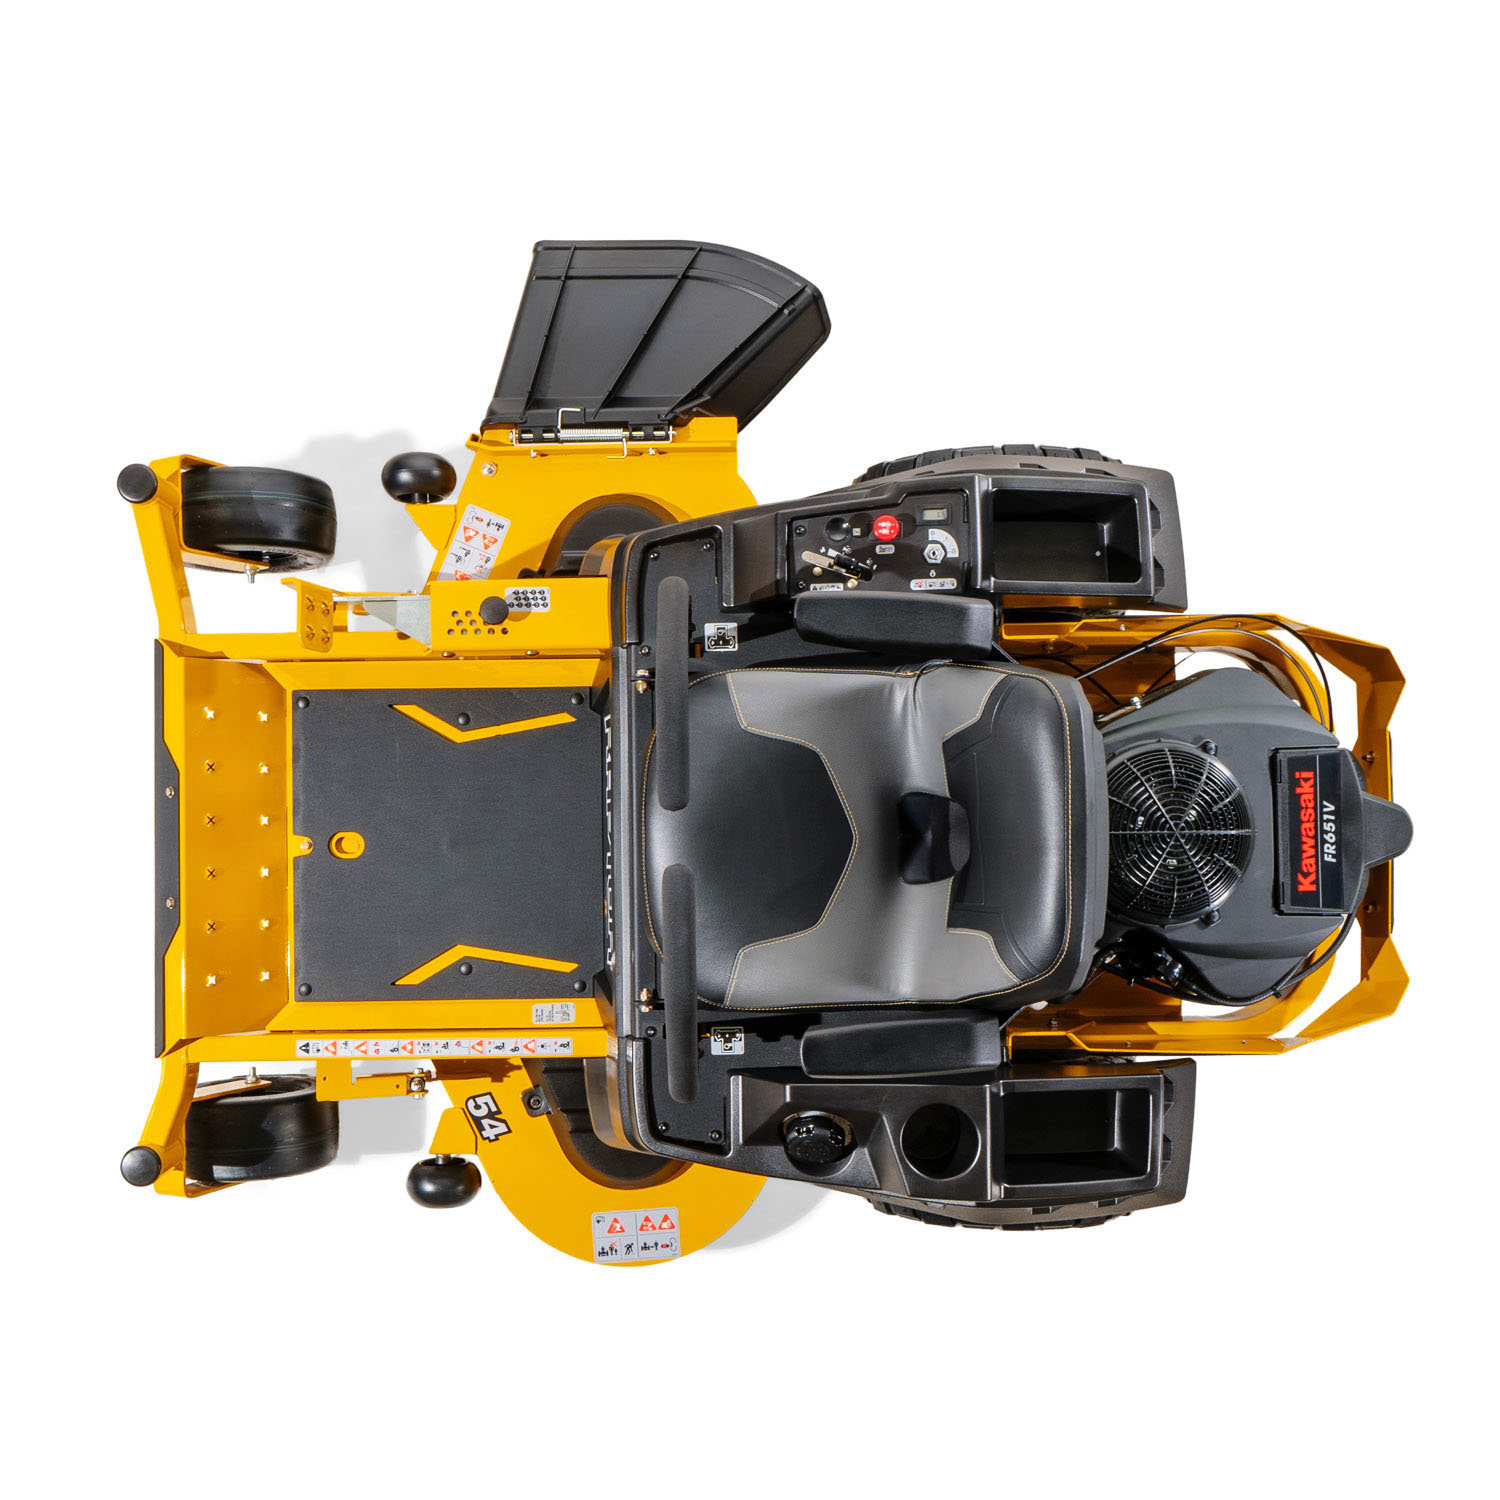 Image of the top view of a yellow Hustler mower